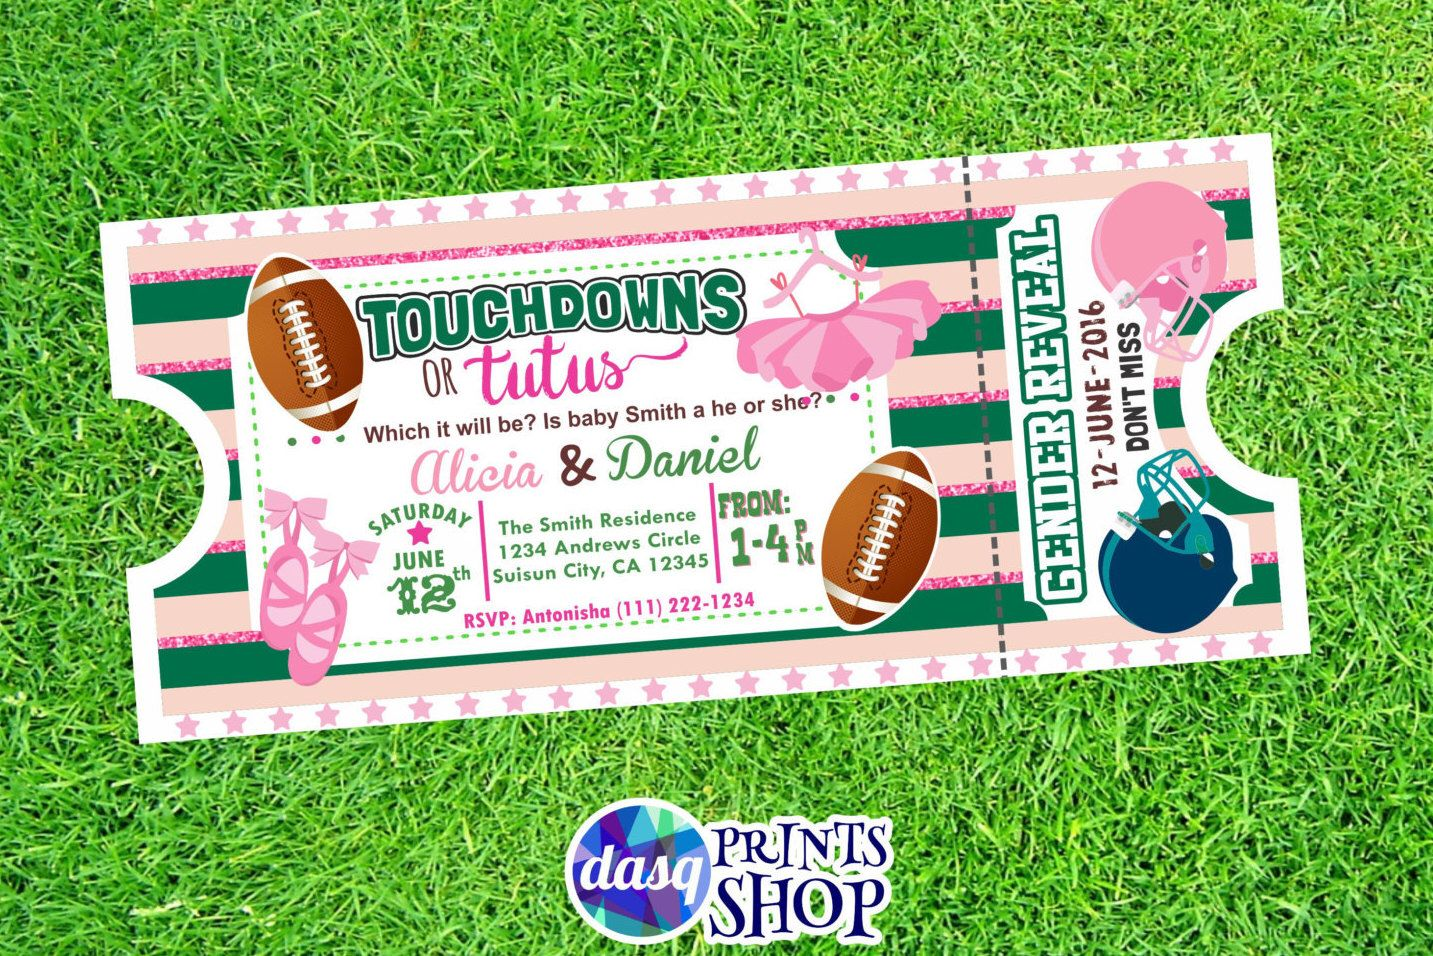 Baby Gender Reveal Touchdowns Or Tutus Gender Reveal Idea Fotball Shower Te Tutus Gender Reveal Baby Reveal Invitations Gender Reveal Party Decorations